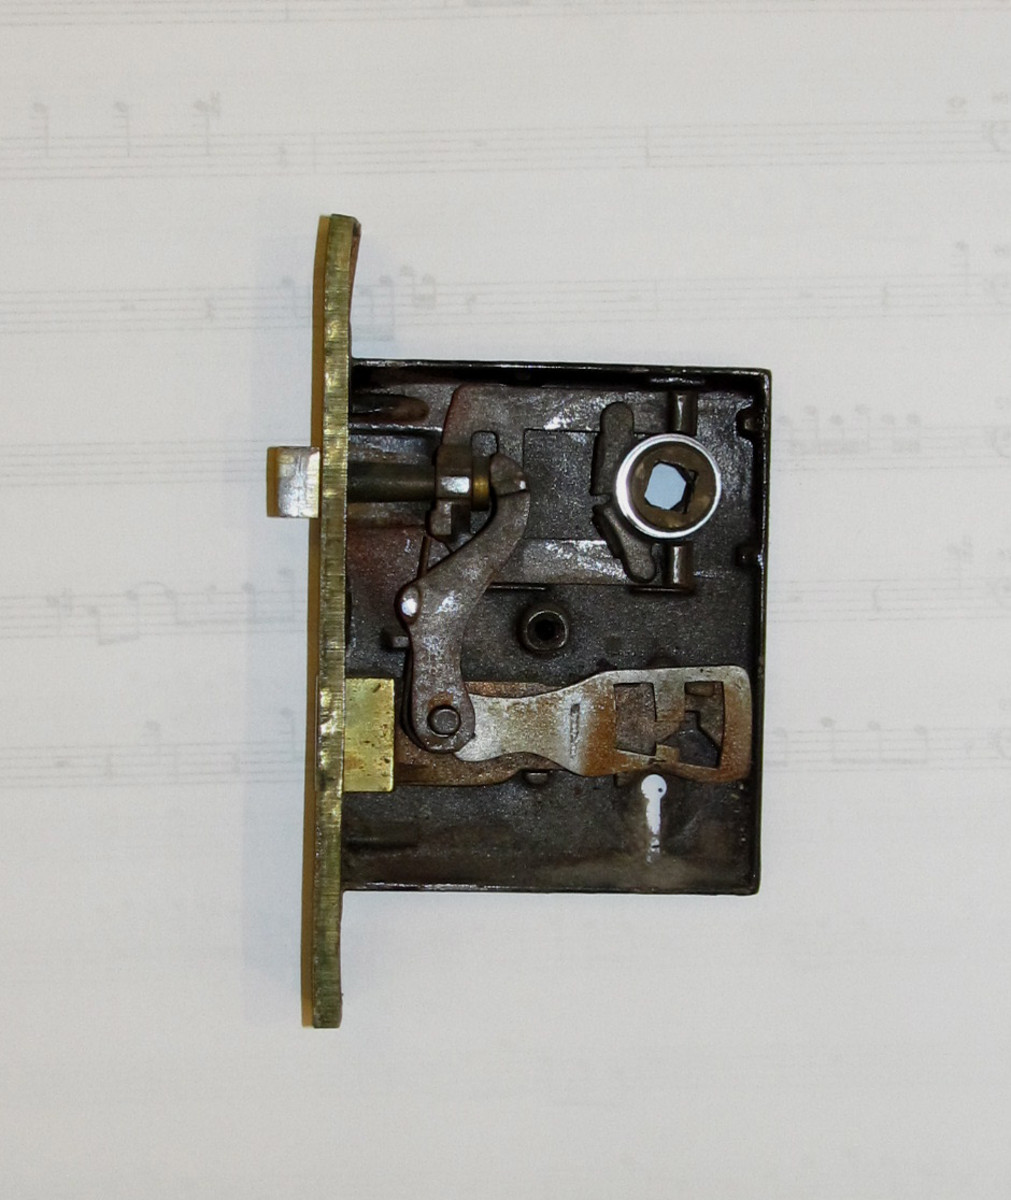 Nashua Lock Company bit key mortise lock, ca. 1902